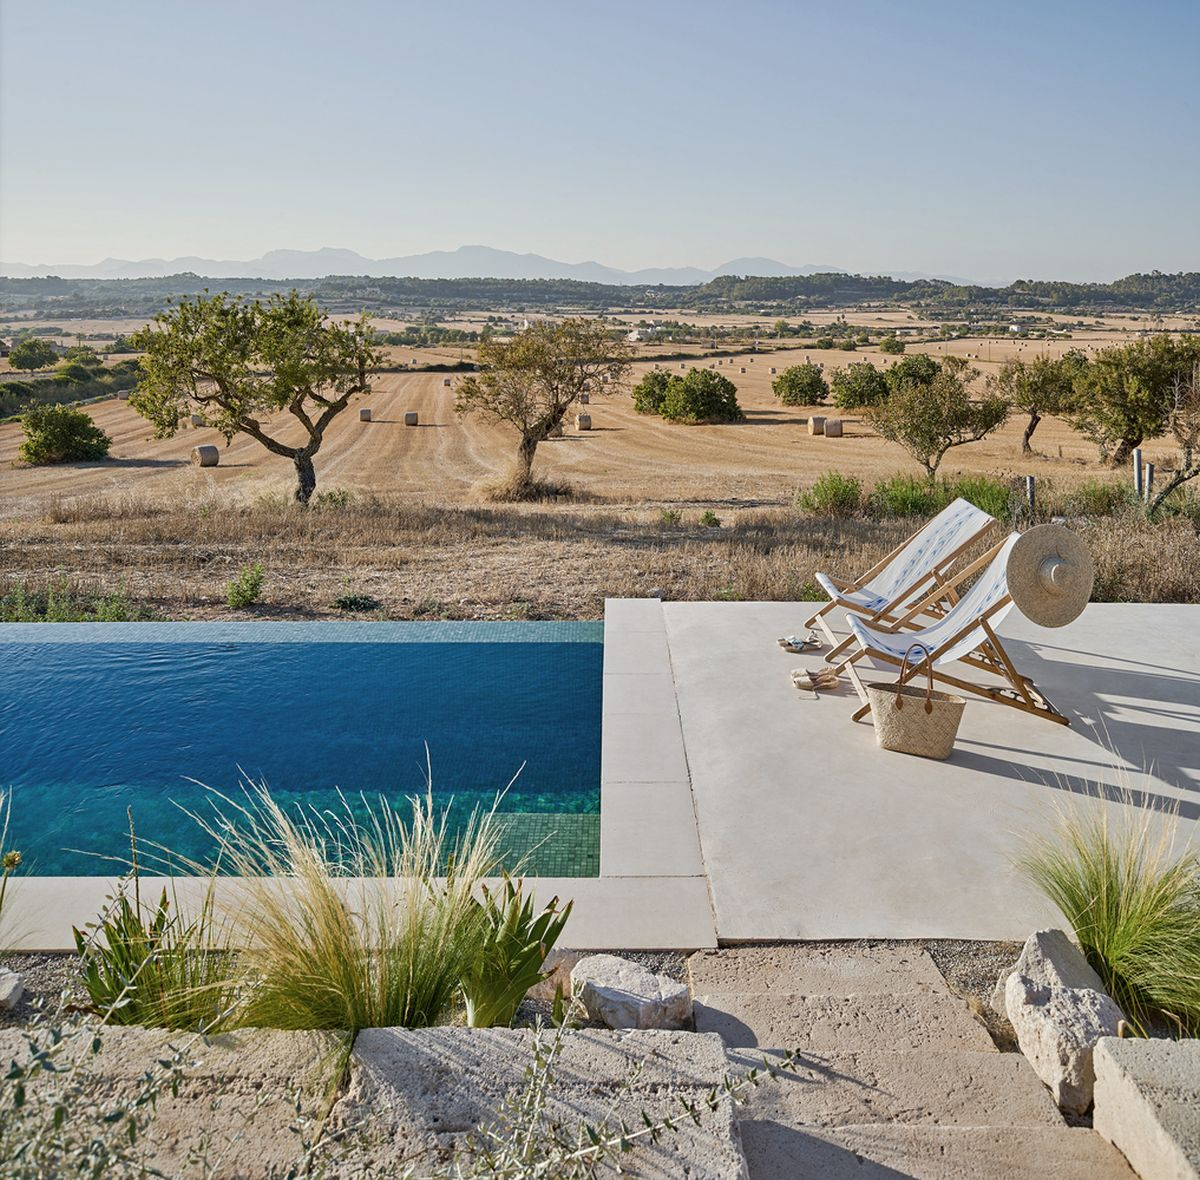 The swimming pool embraces the slope and sits parallel to the house